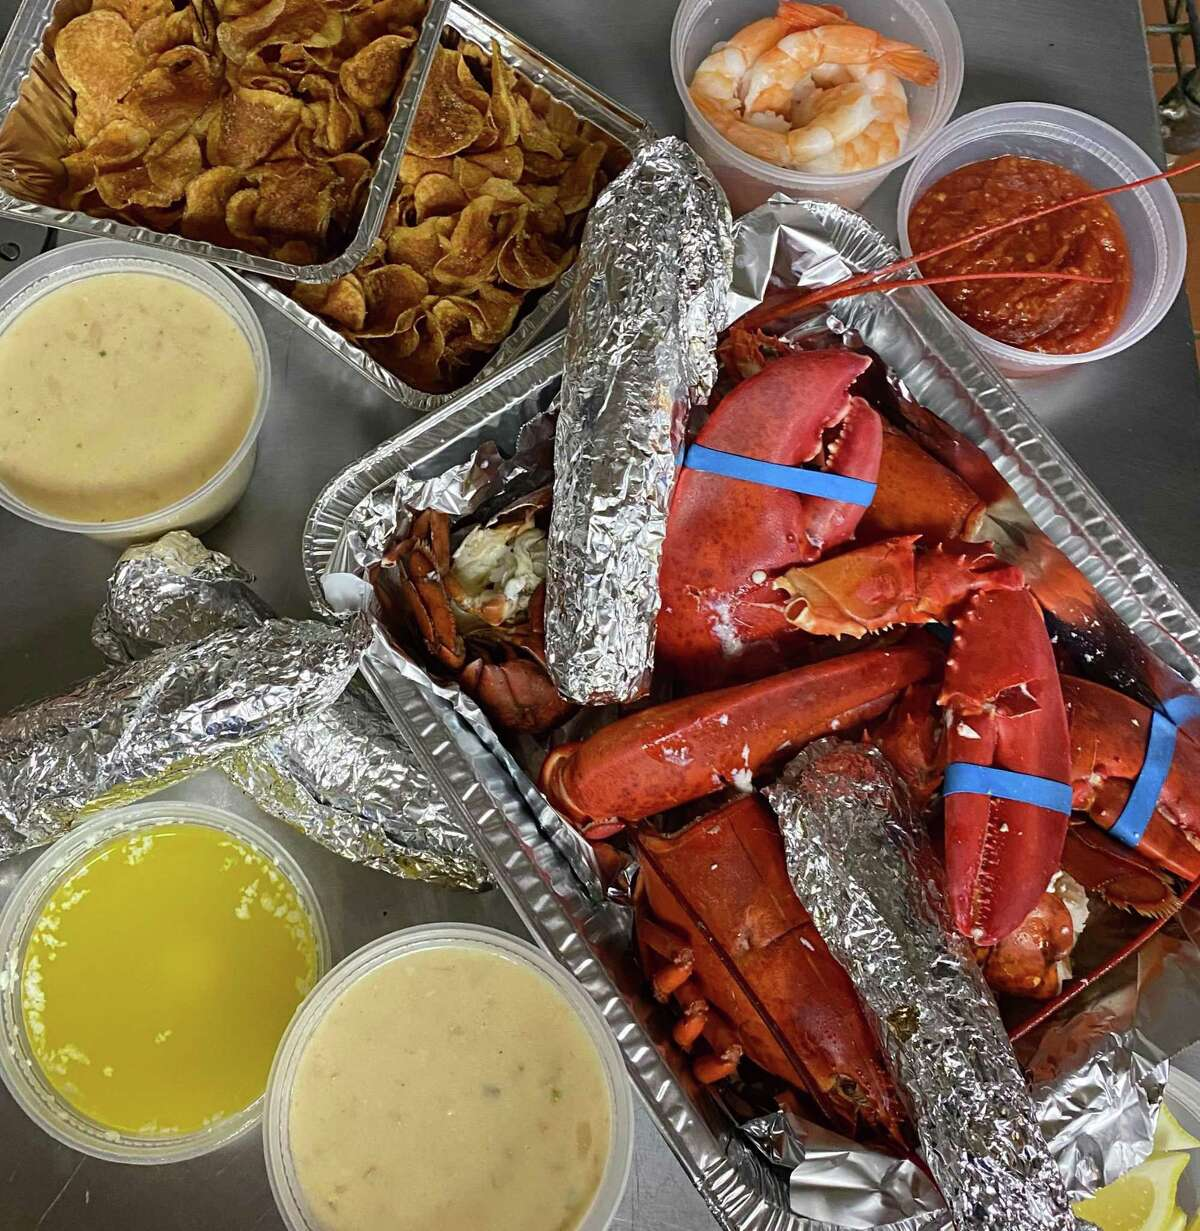 Match Restaurant and Match Burger Lobster have offered several kits throughout the COVID-19 pandemic, including do-it-yourself lobster roll meals and others with cooked whole lobsters.